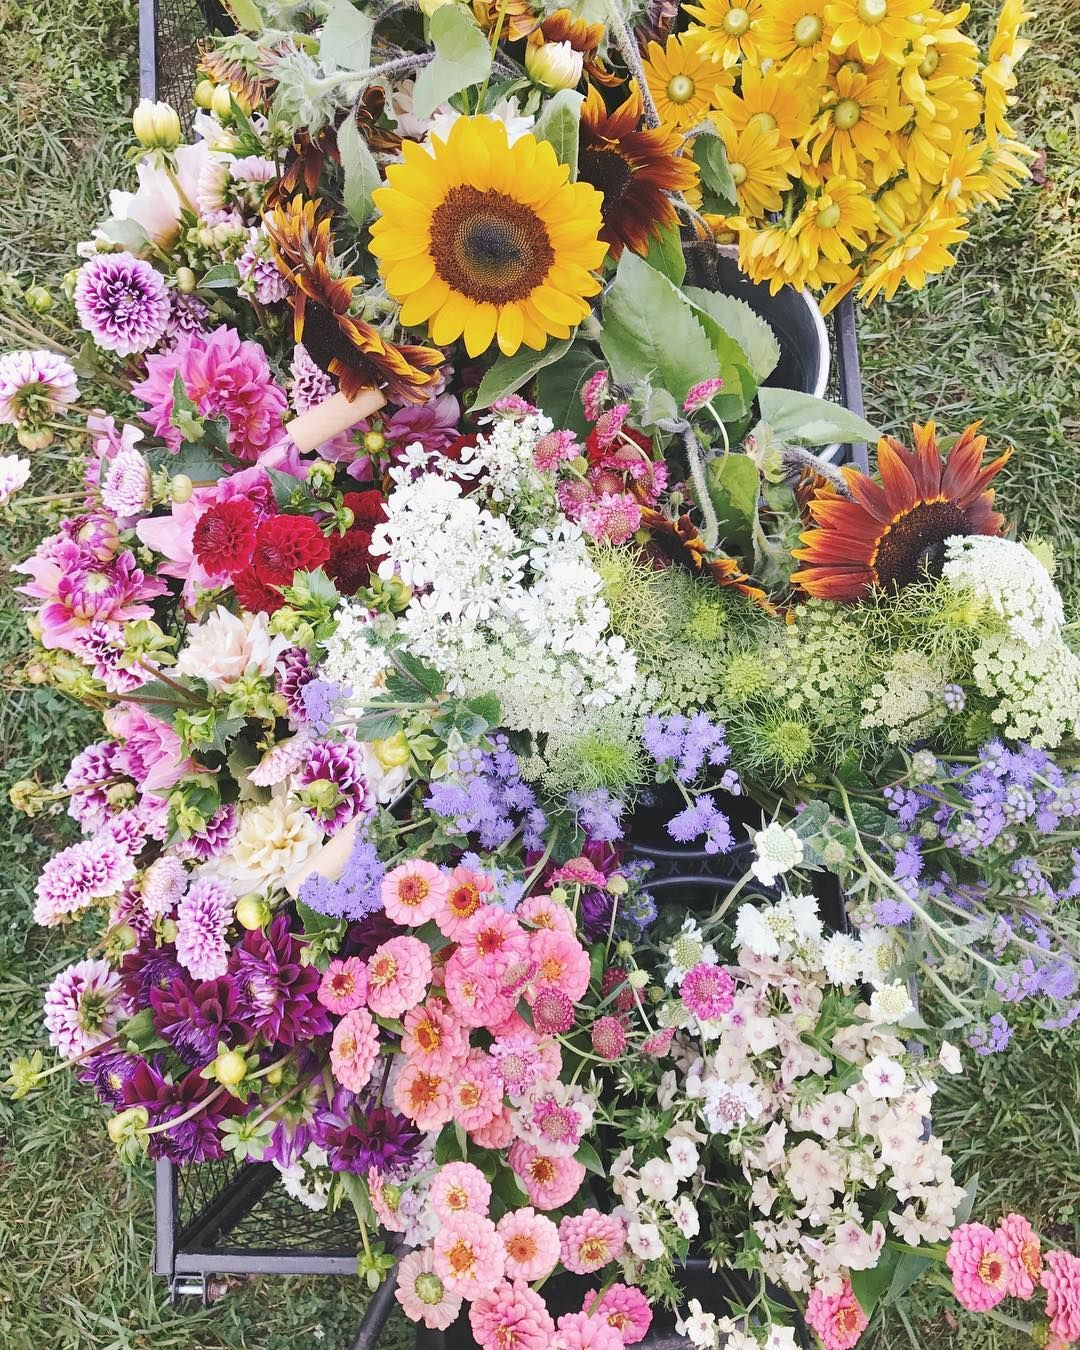 All The Different Types Of Flowers We Picked Yesterday